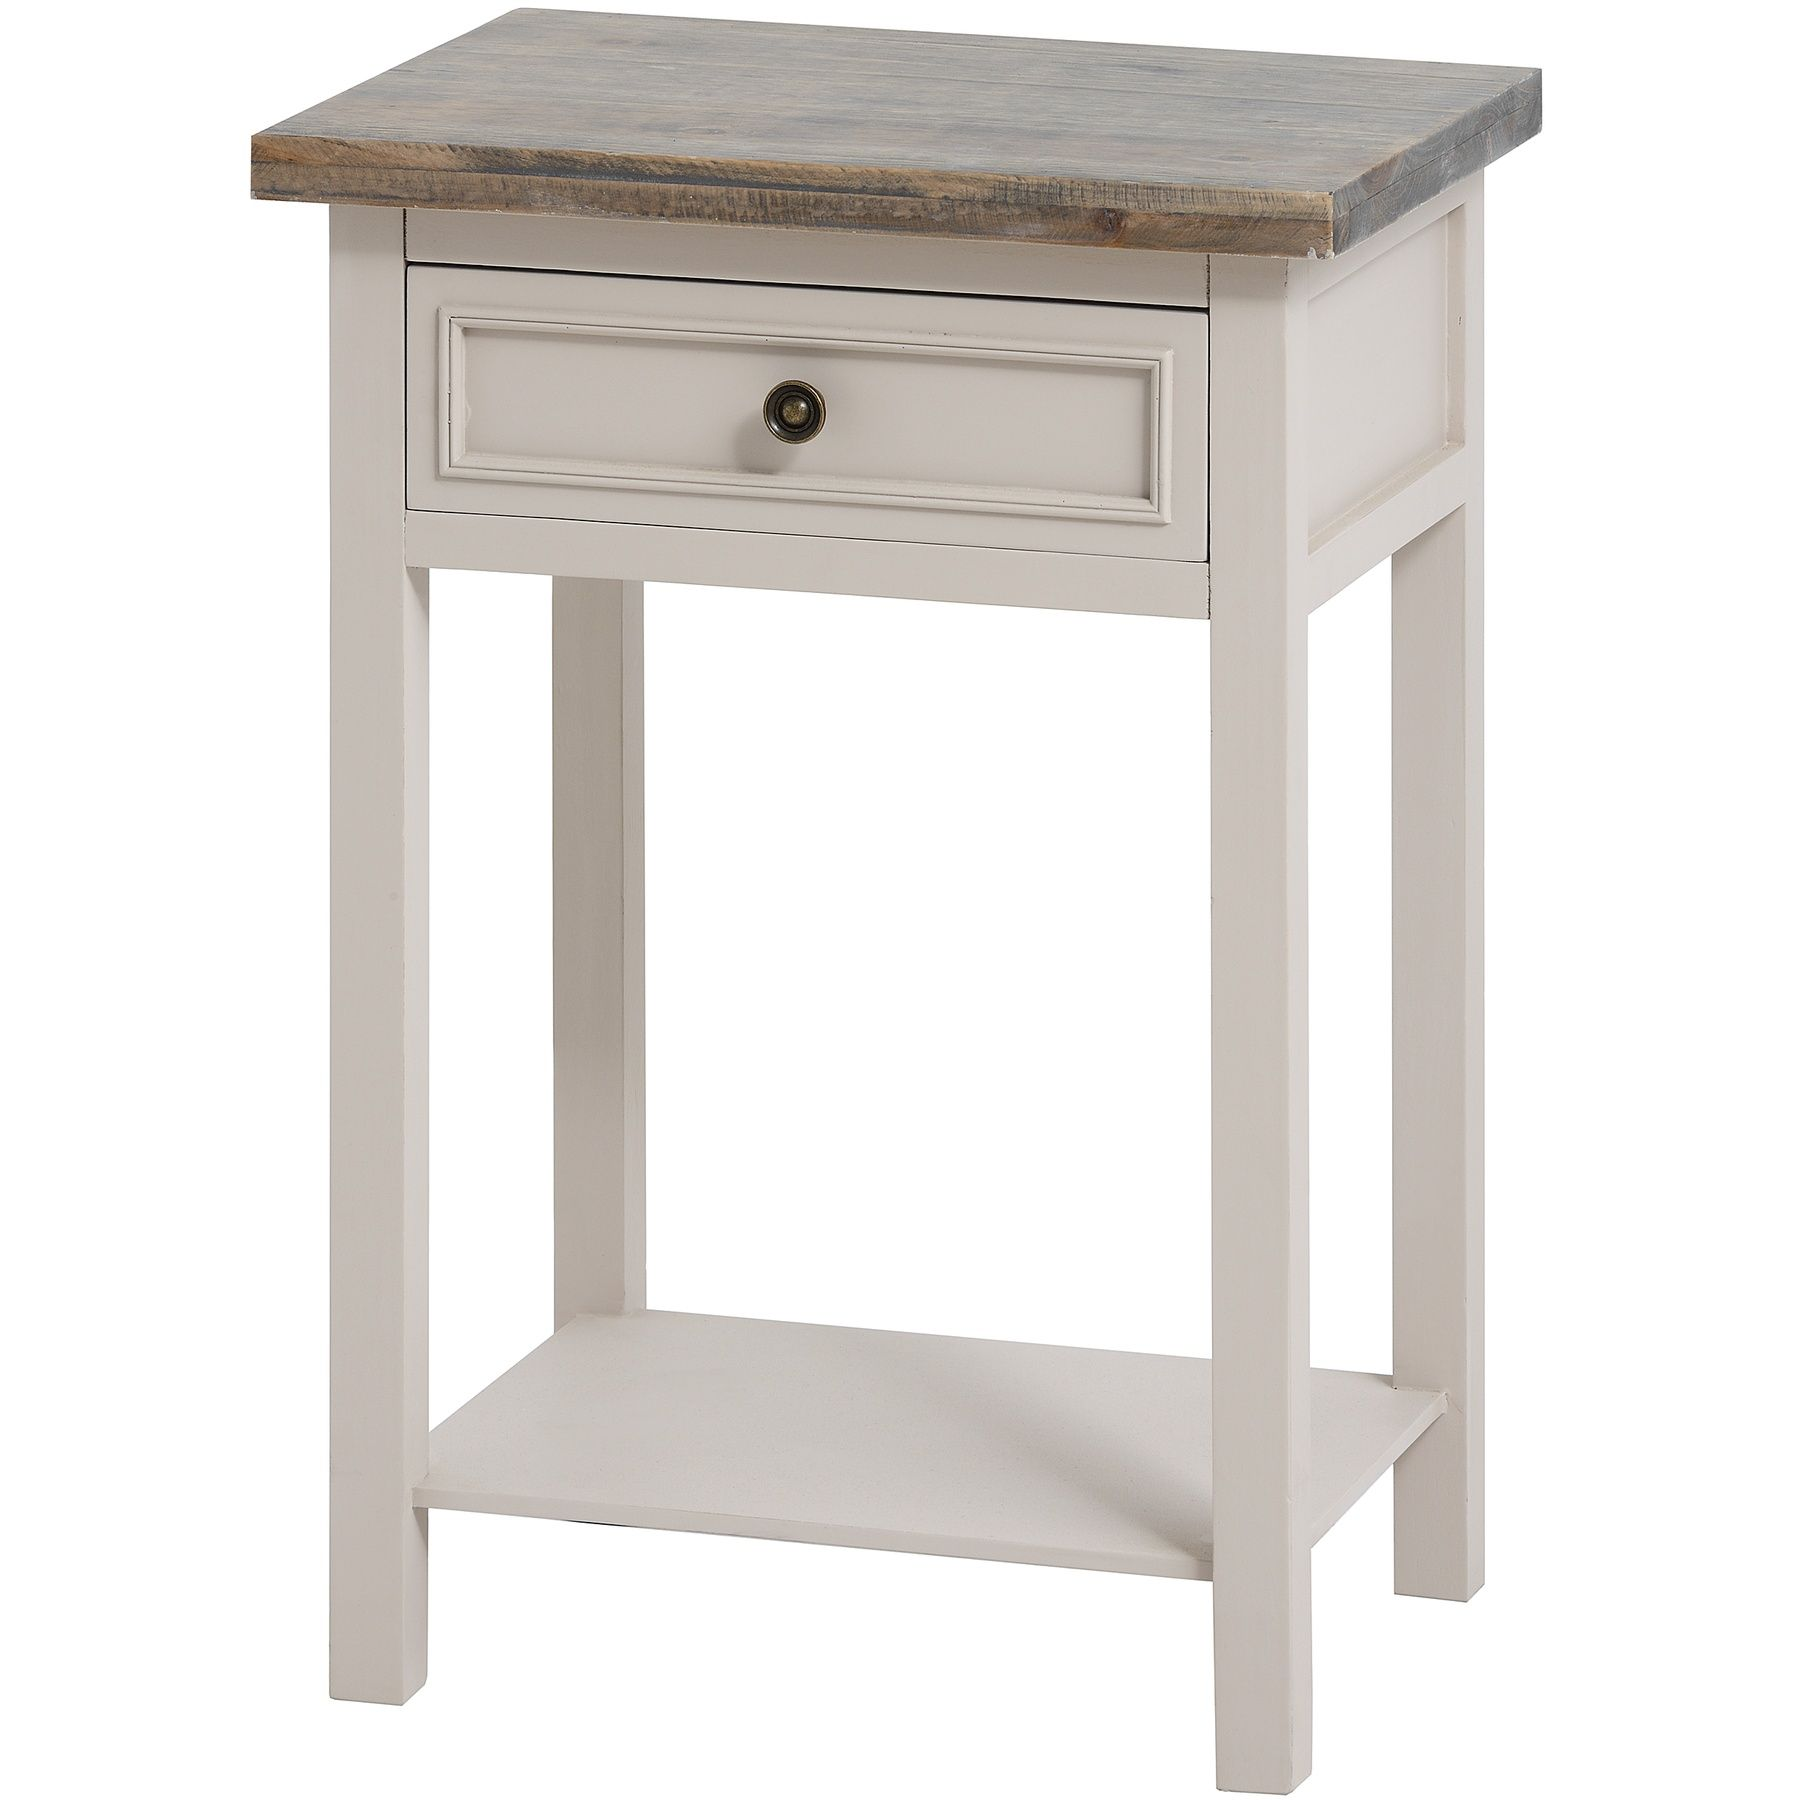 The Studley Collection 1 Drawer Lamp Table